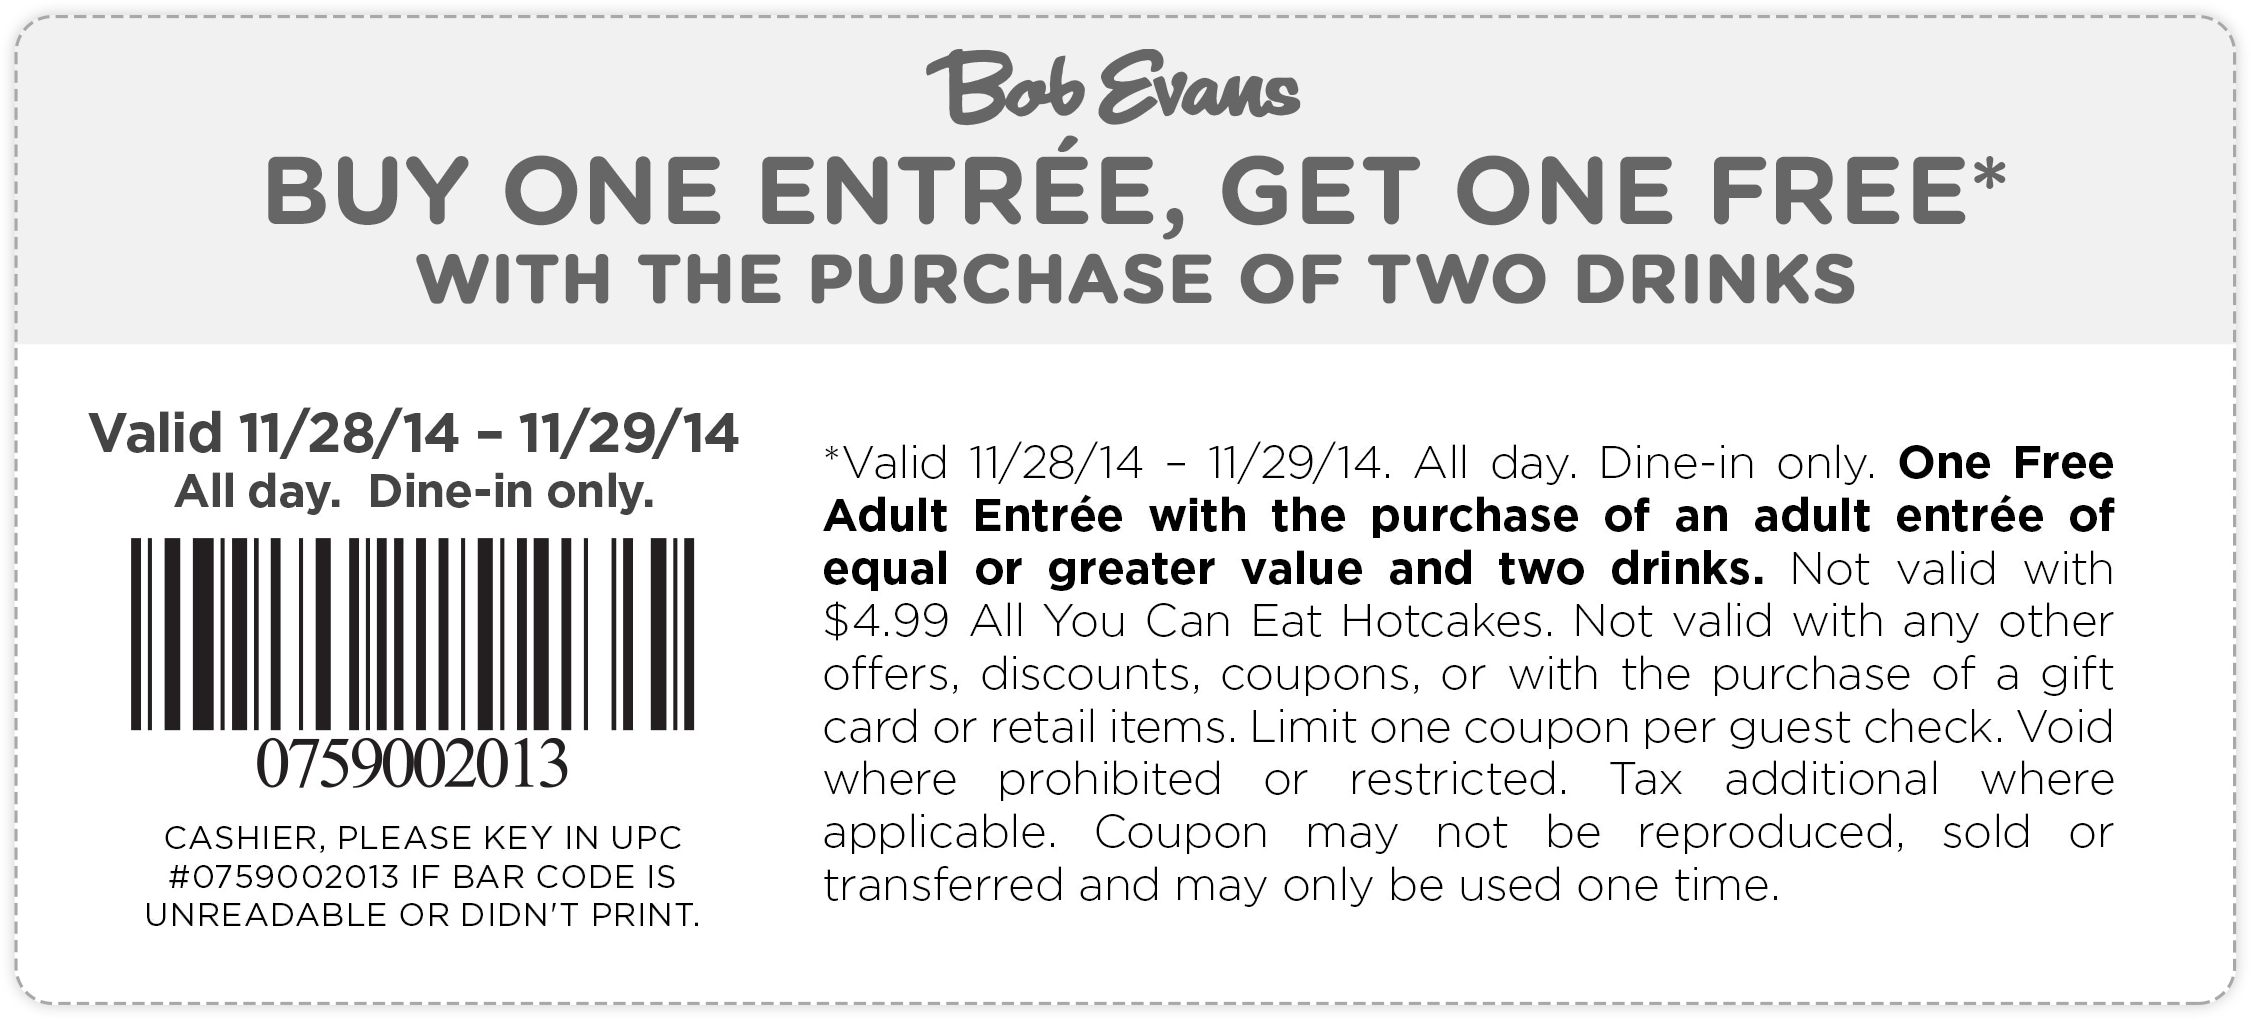 Bob Evans Coupon January 2017 Second entree free all day at Bob Evans